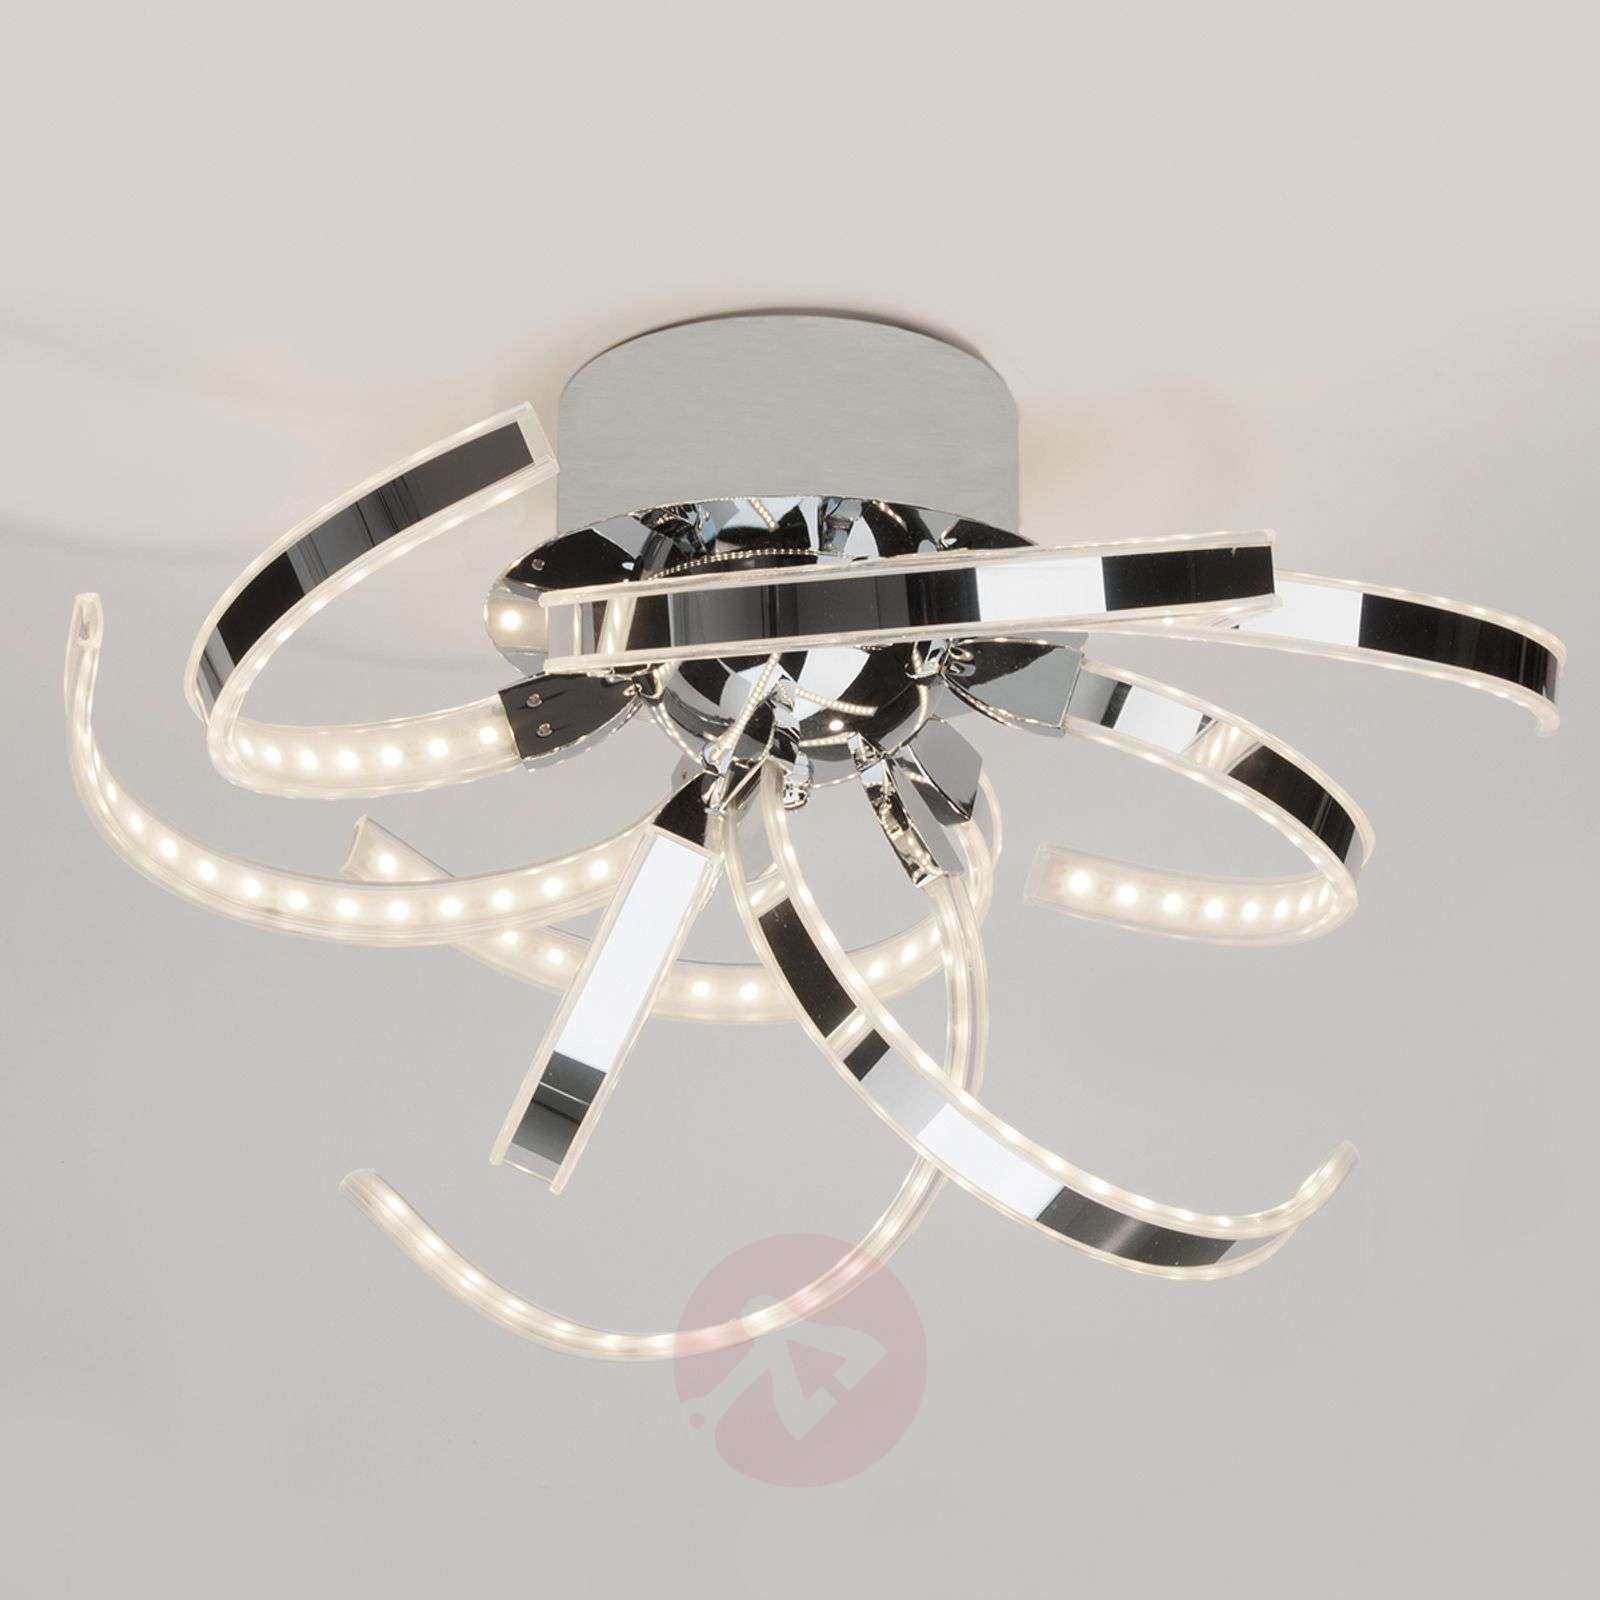 Appealing LED ceiling light Yunan-1509049-01